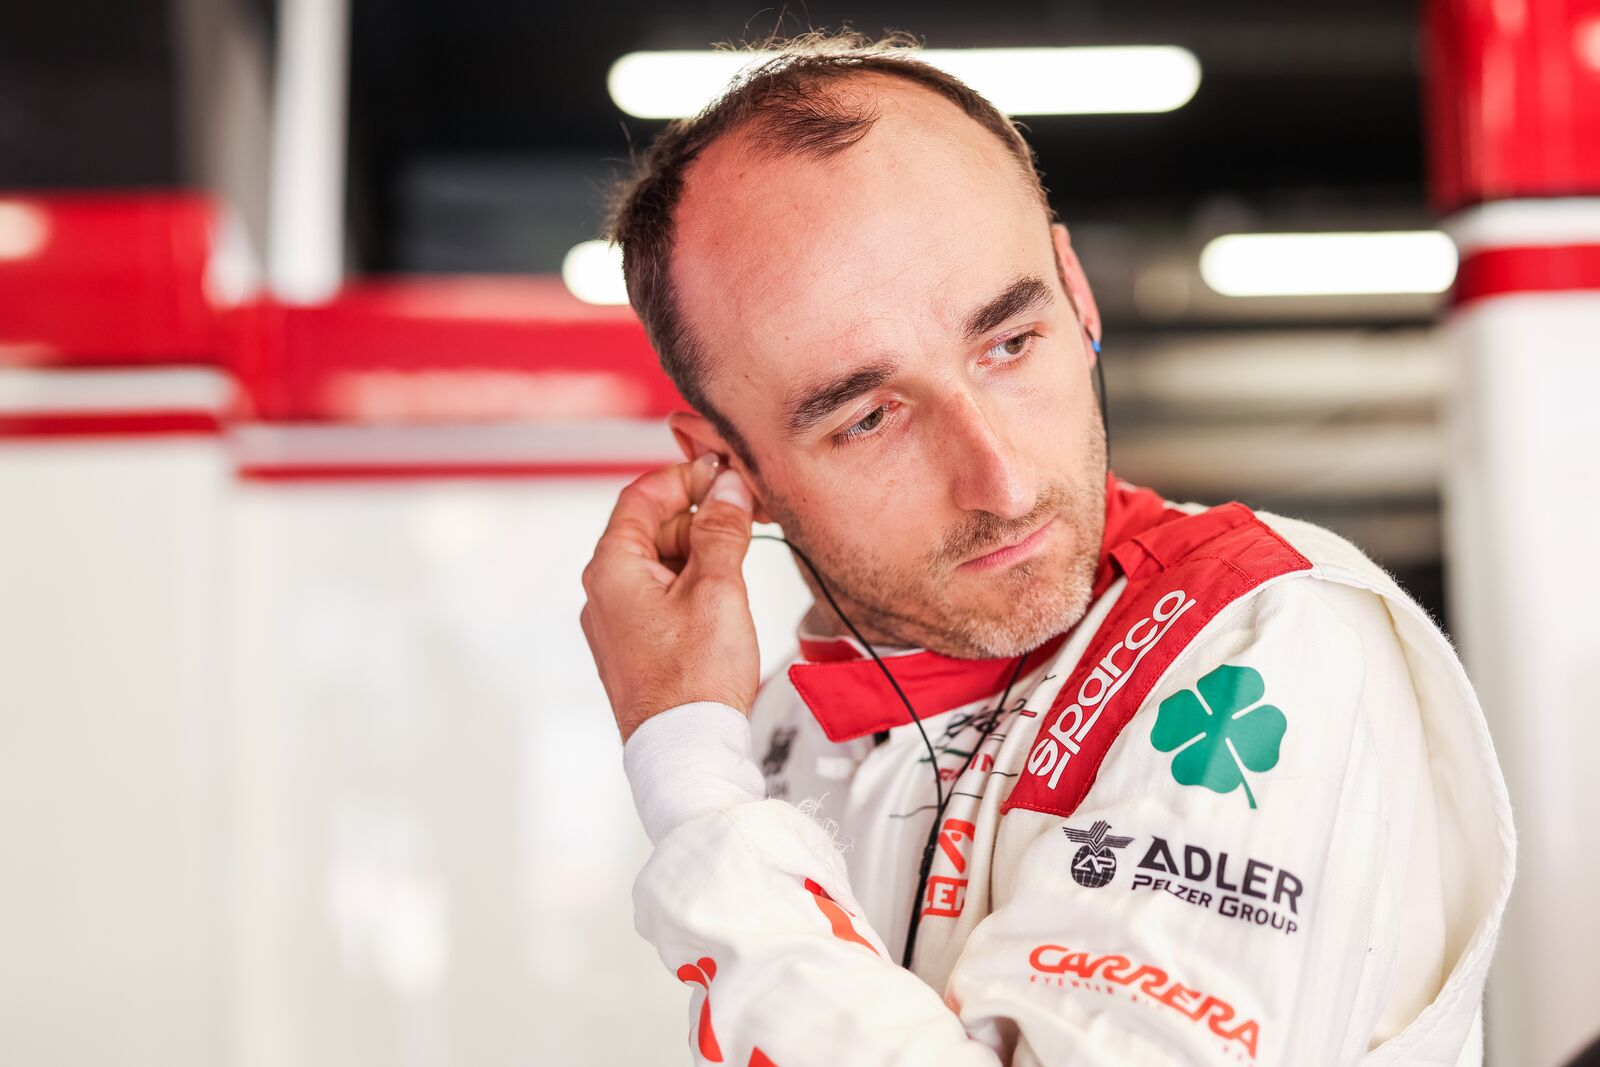 Marathon man Kubica 'getting old' but still able to do it